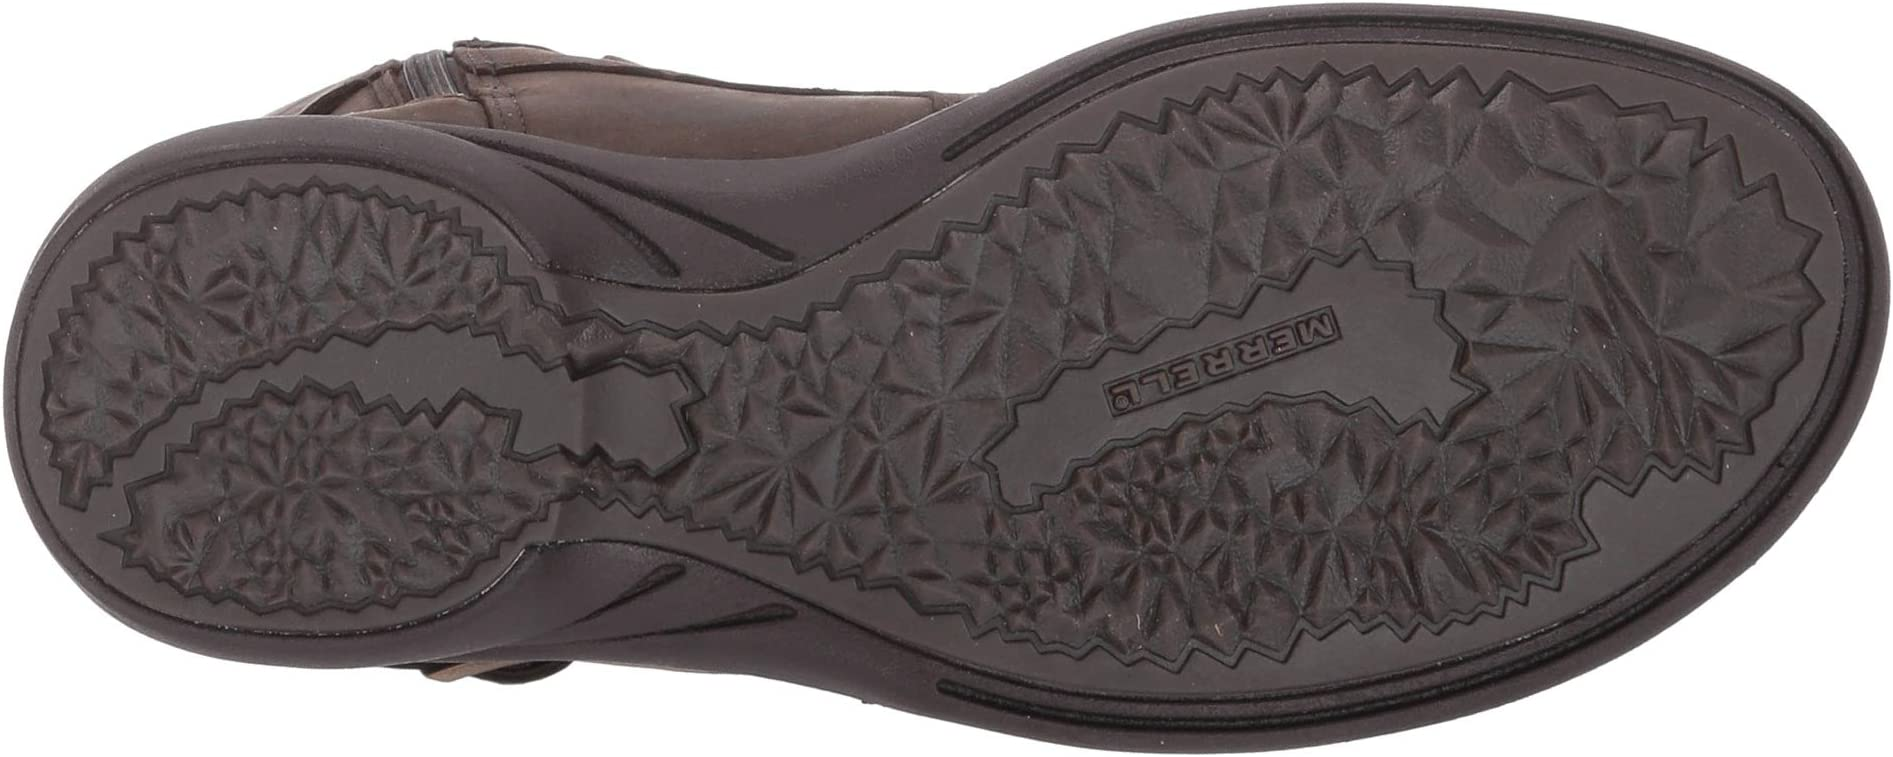 Merrell Andover Tall Waterproof | Women's shoes | 2020 Newest